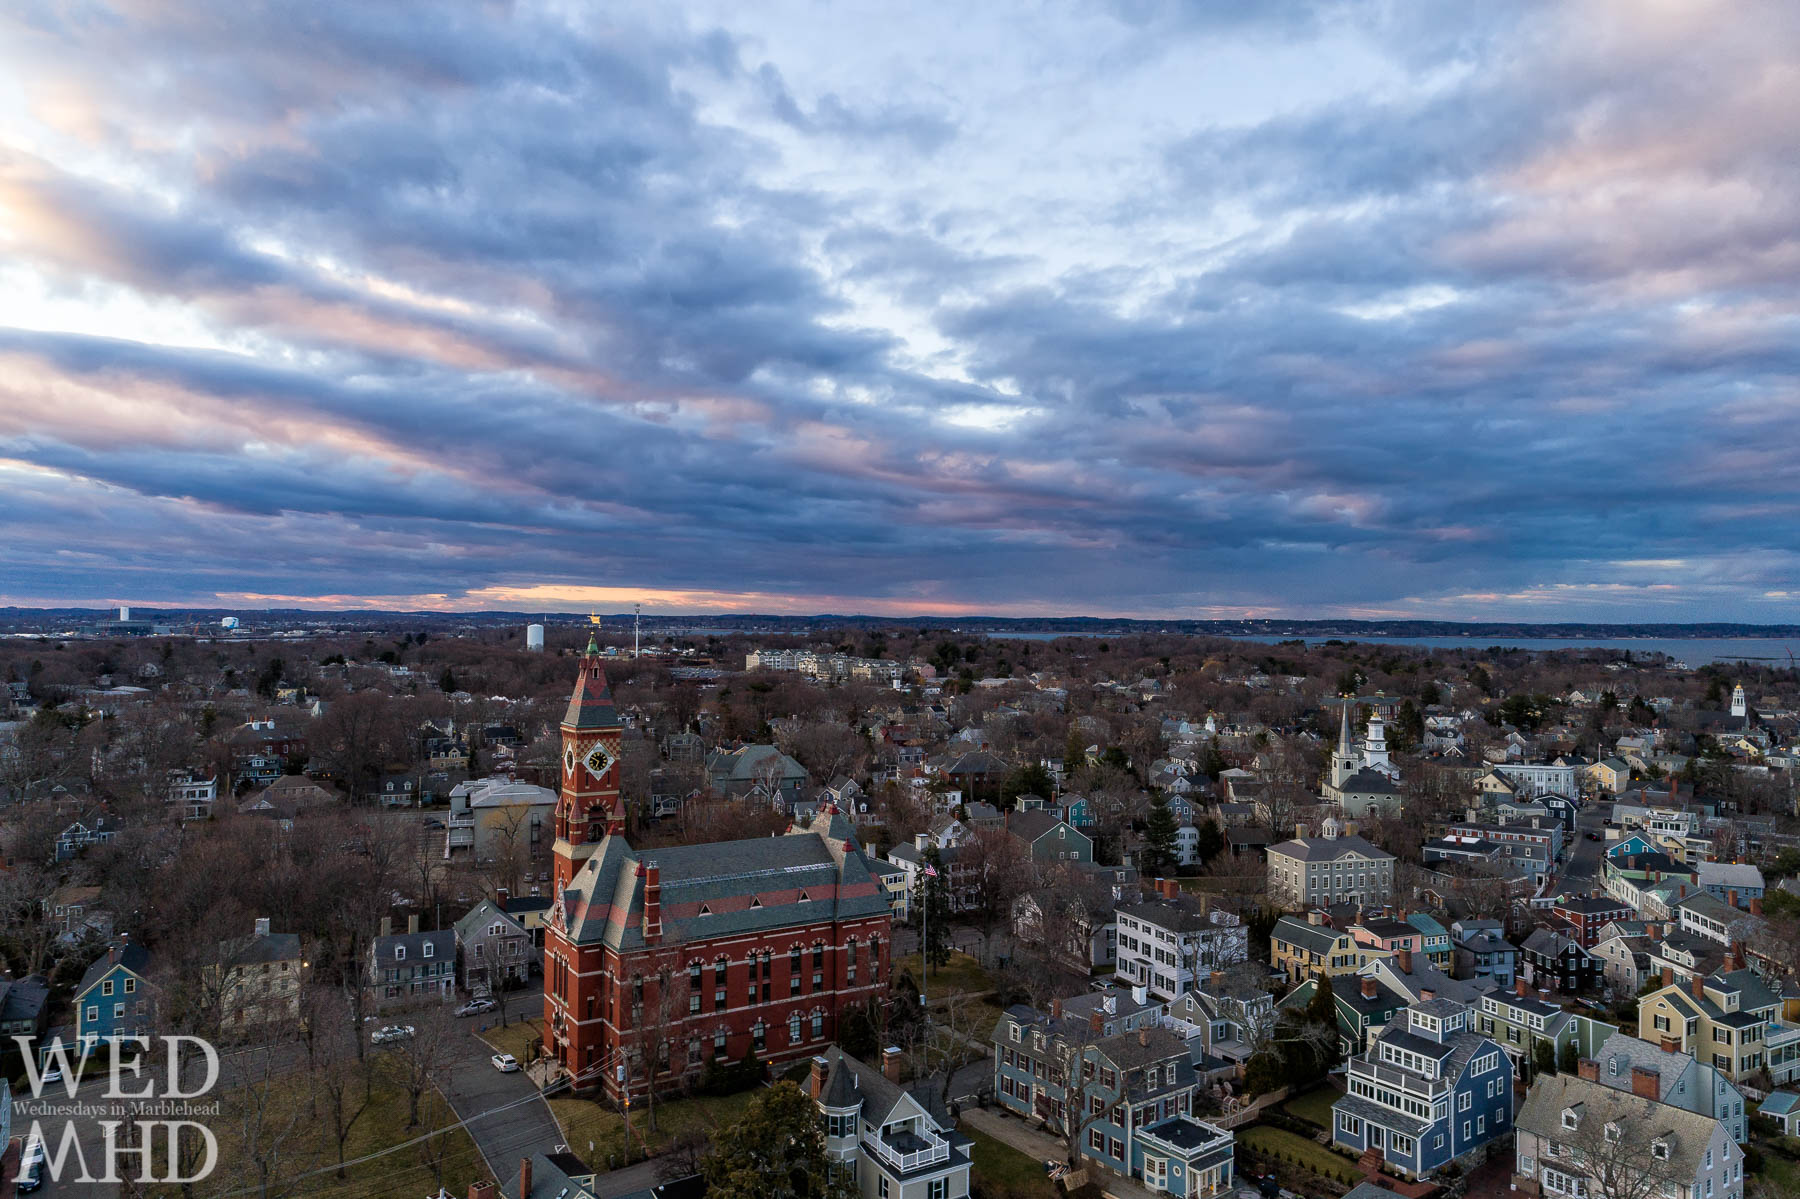 A view of Abbot from above captured at sunset on a late March evening shows the building without its temporary construction and the proximity of houses and other familiar landmarks